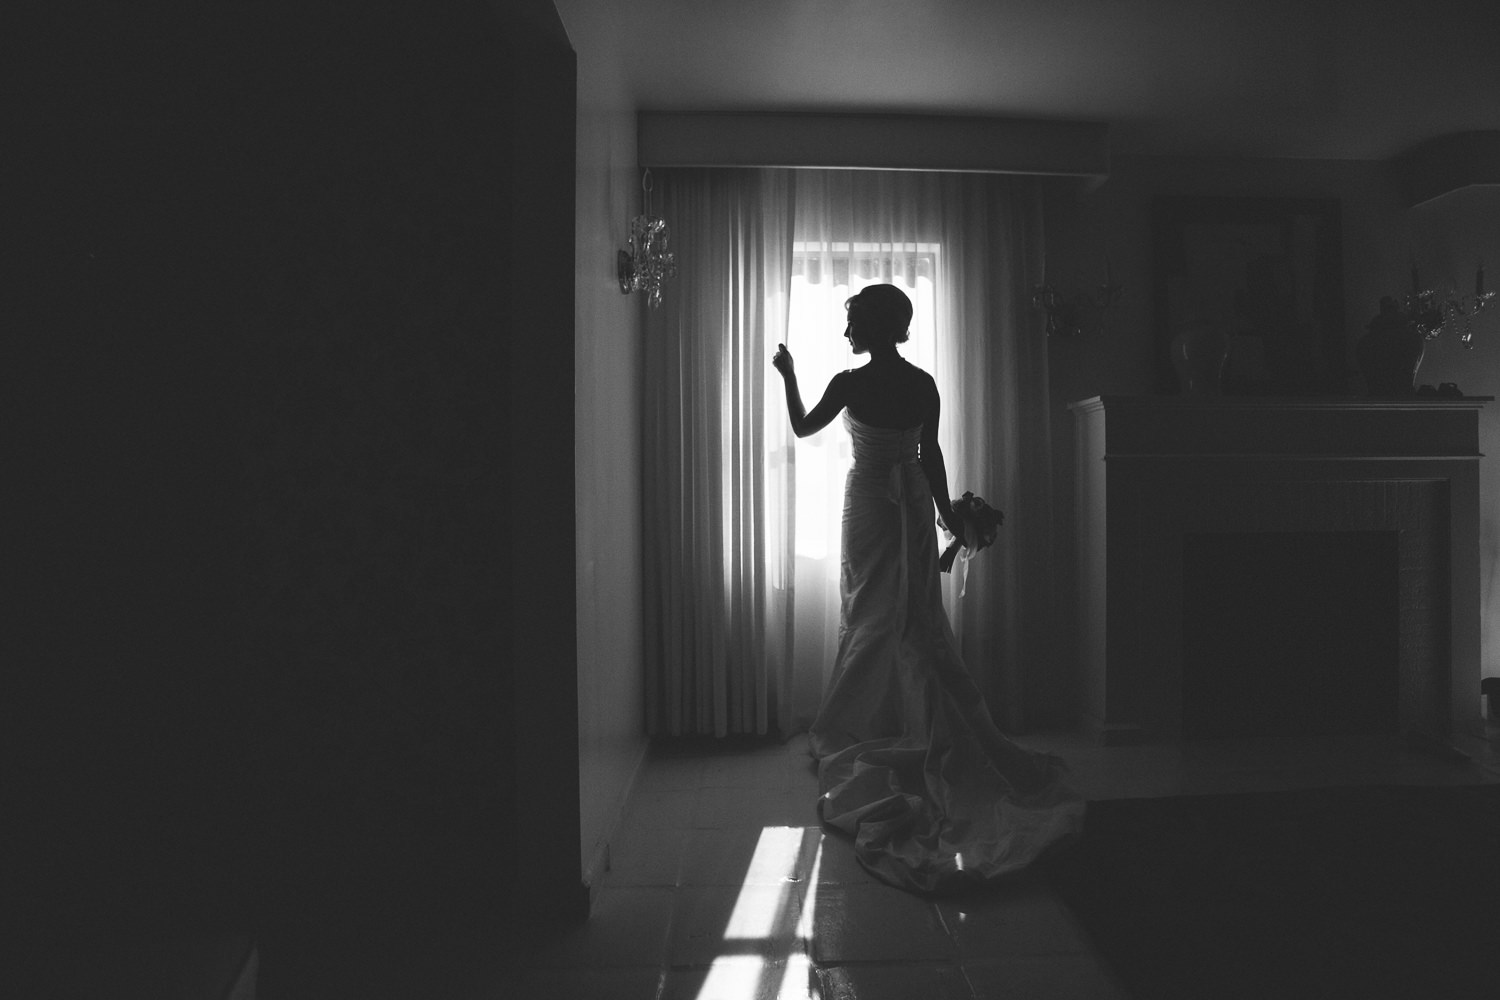 Avalon Palm Springs Photographer - Gorgeous bride lit by the window light in black and white